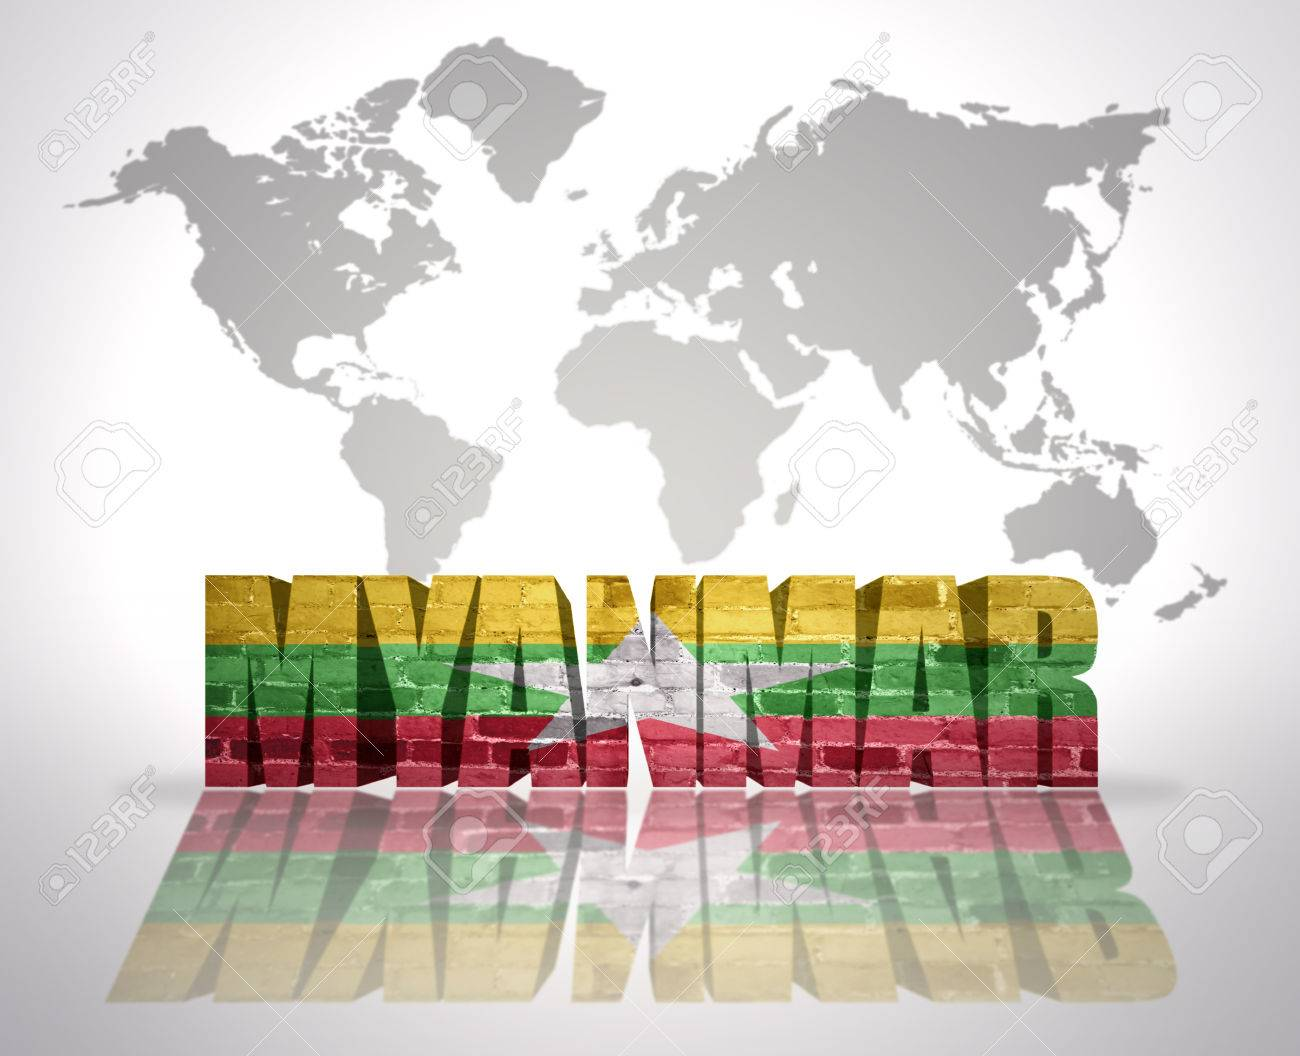 Word myanmar with myanmar flag on a world map background stock word myanmar with myanmar flag on a world map background stock photo 34208041 gumiabroncs Images